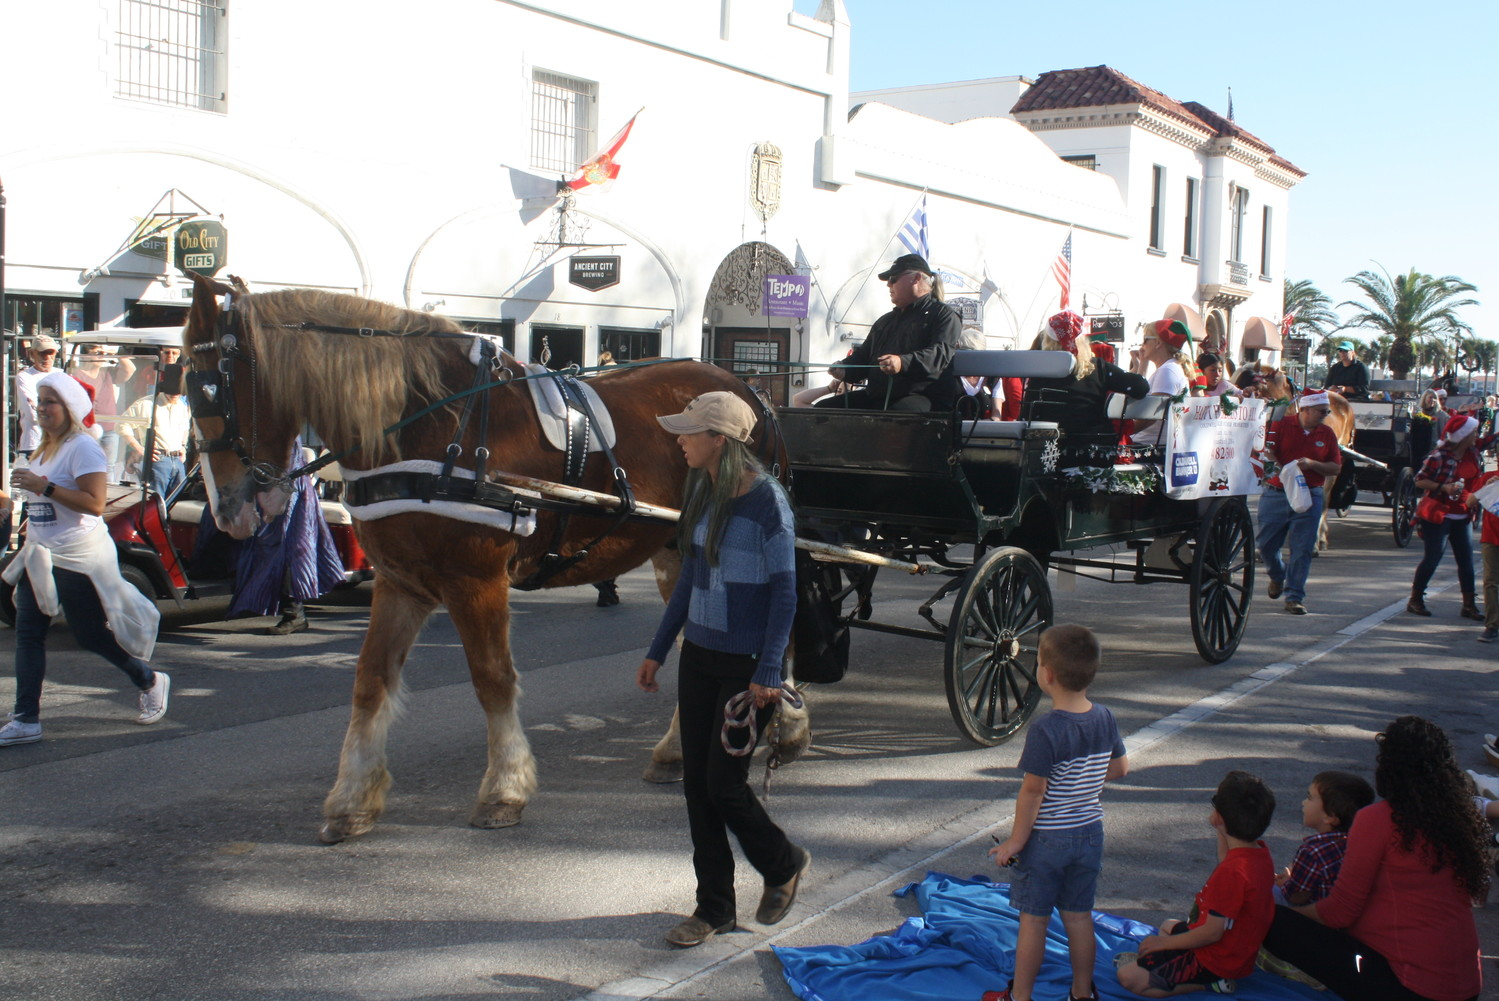 Coldwell Banker's horse drawn carriage rolls through the parade.